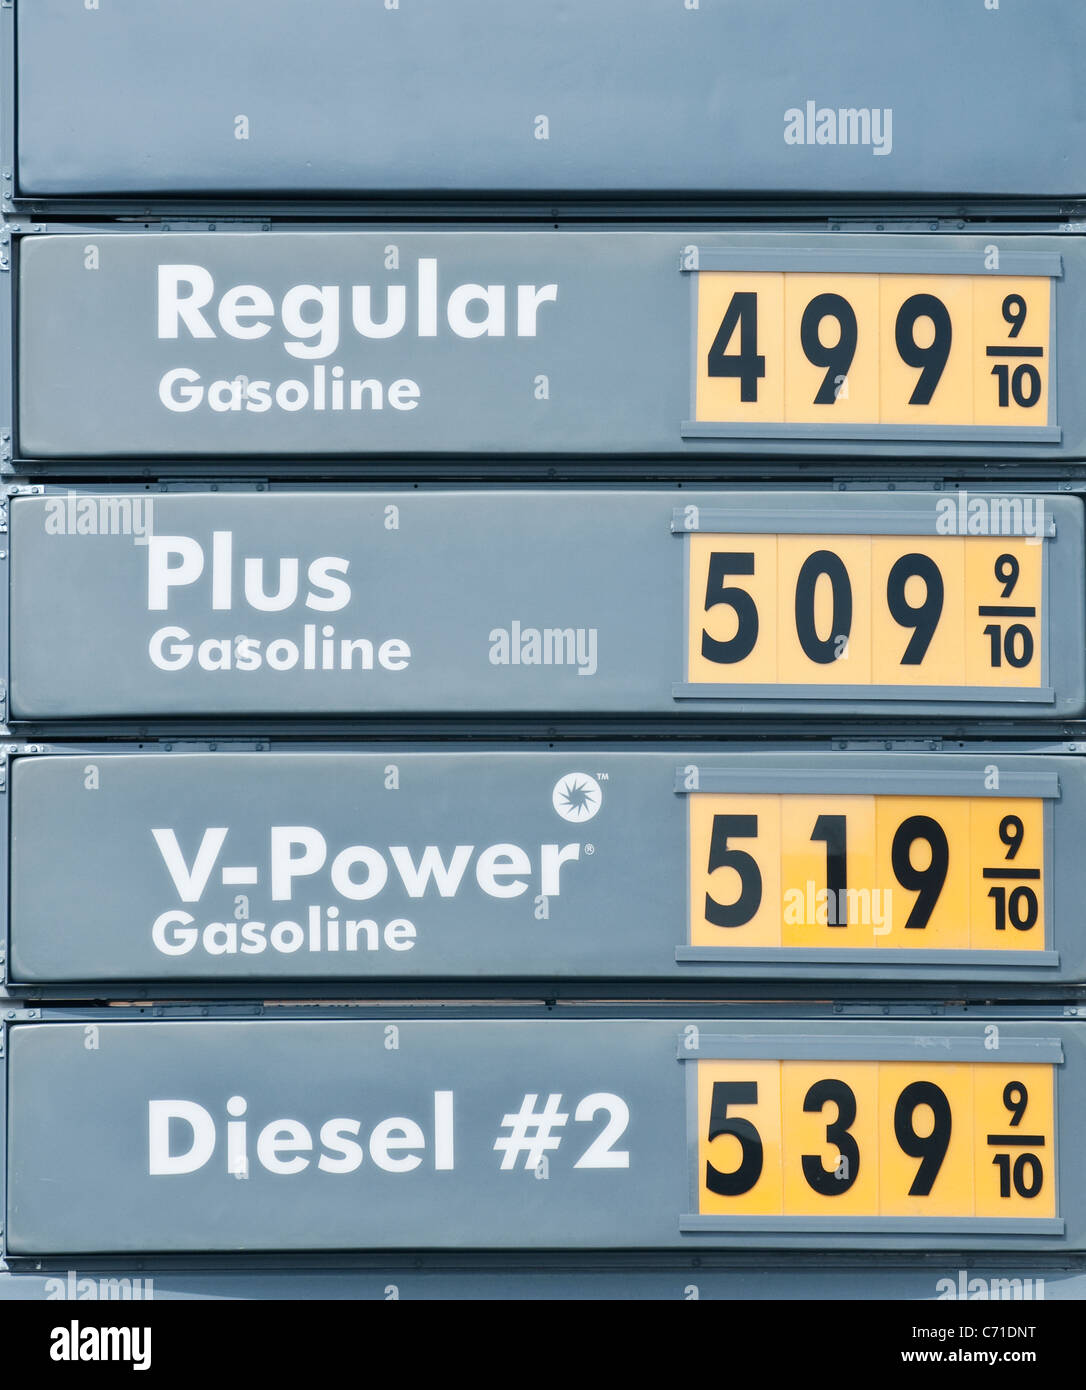 The price of gas is the highest in America's small towns like Bridgeport, California. - Stock Image